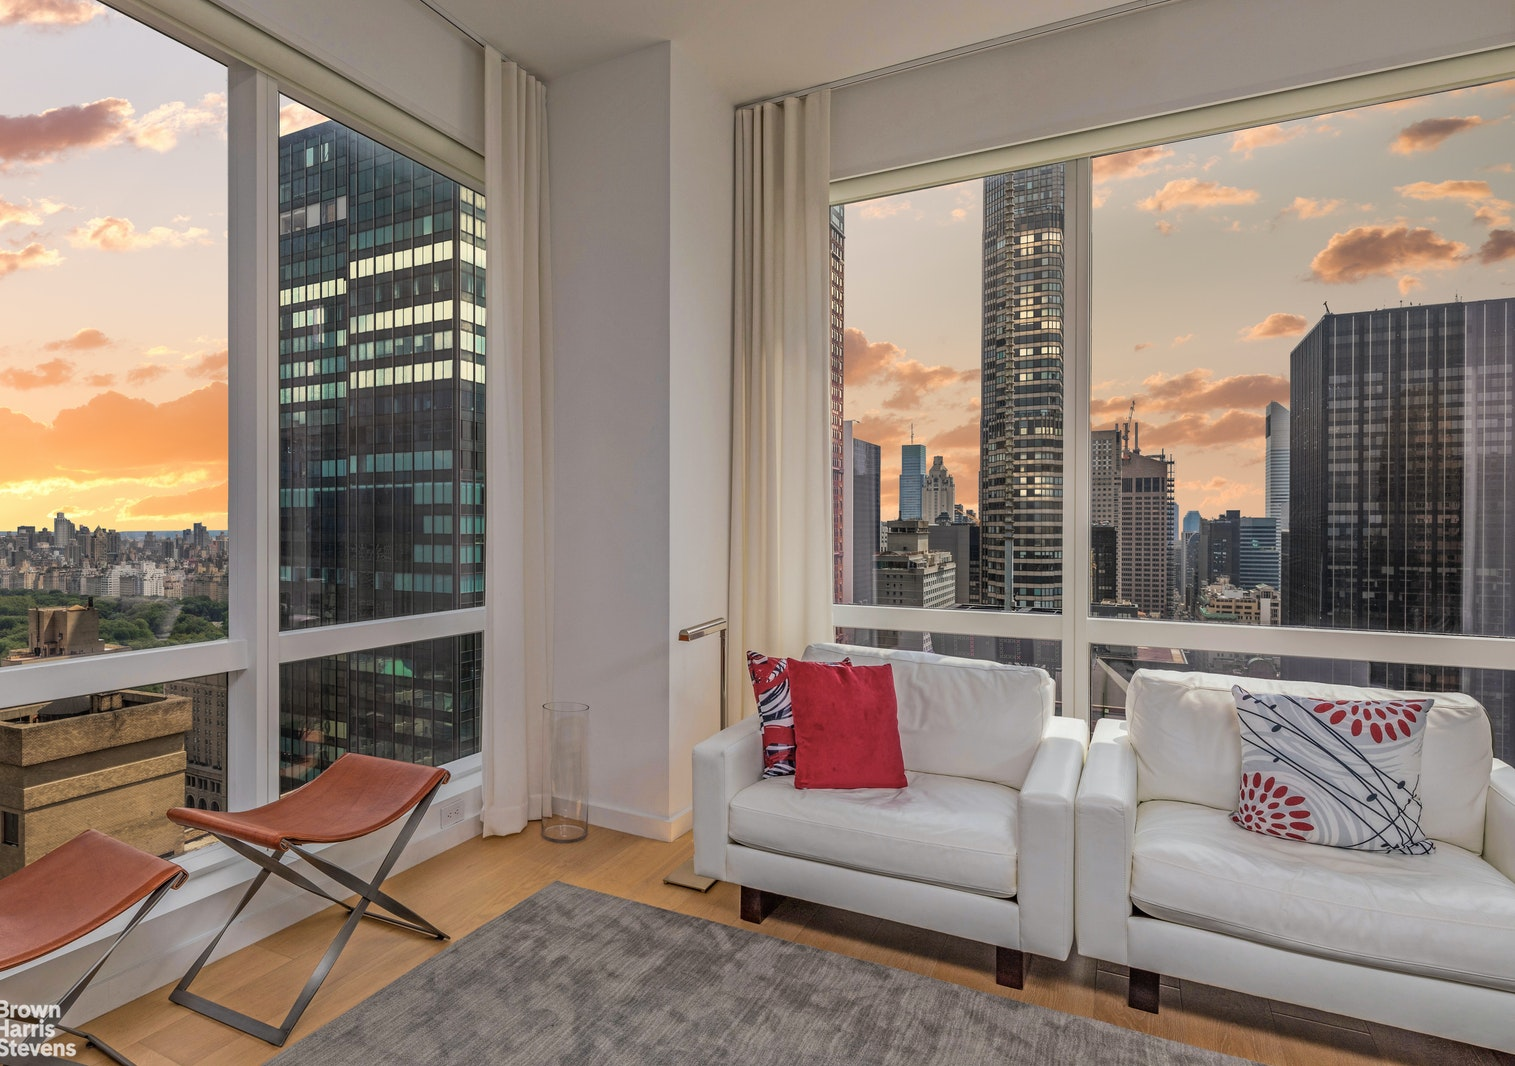 230 WEST 56TH STREET 52C, Midtown West, $3,500,000, Web #: 19820641